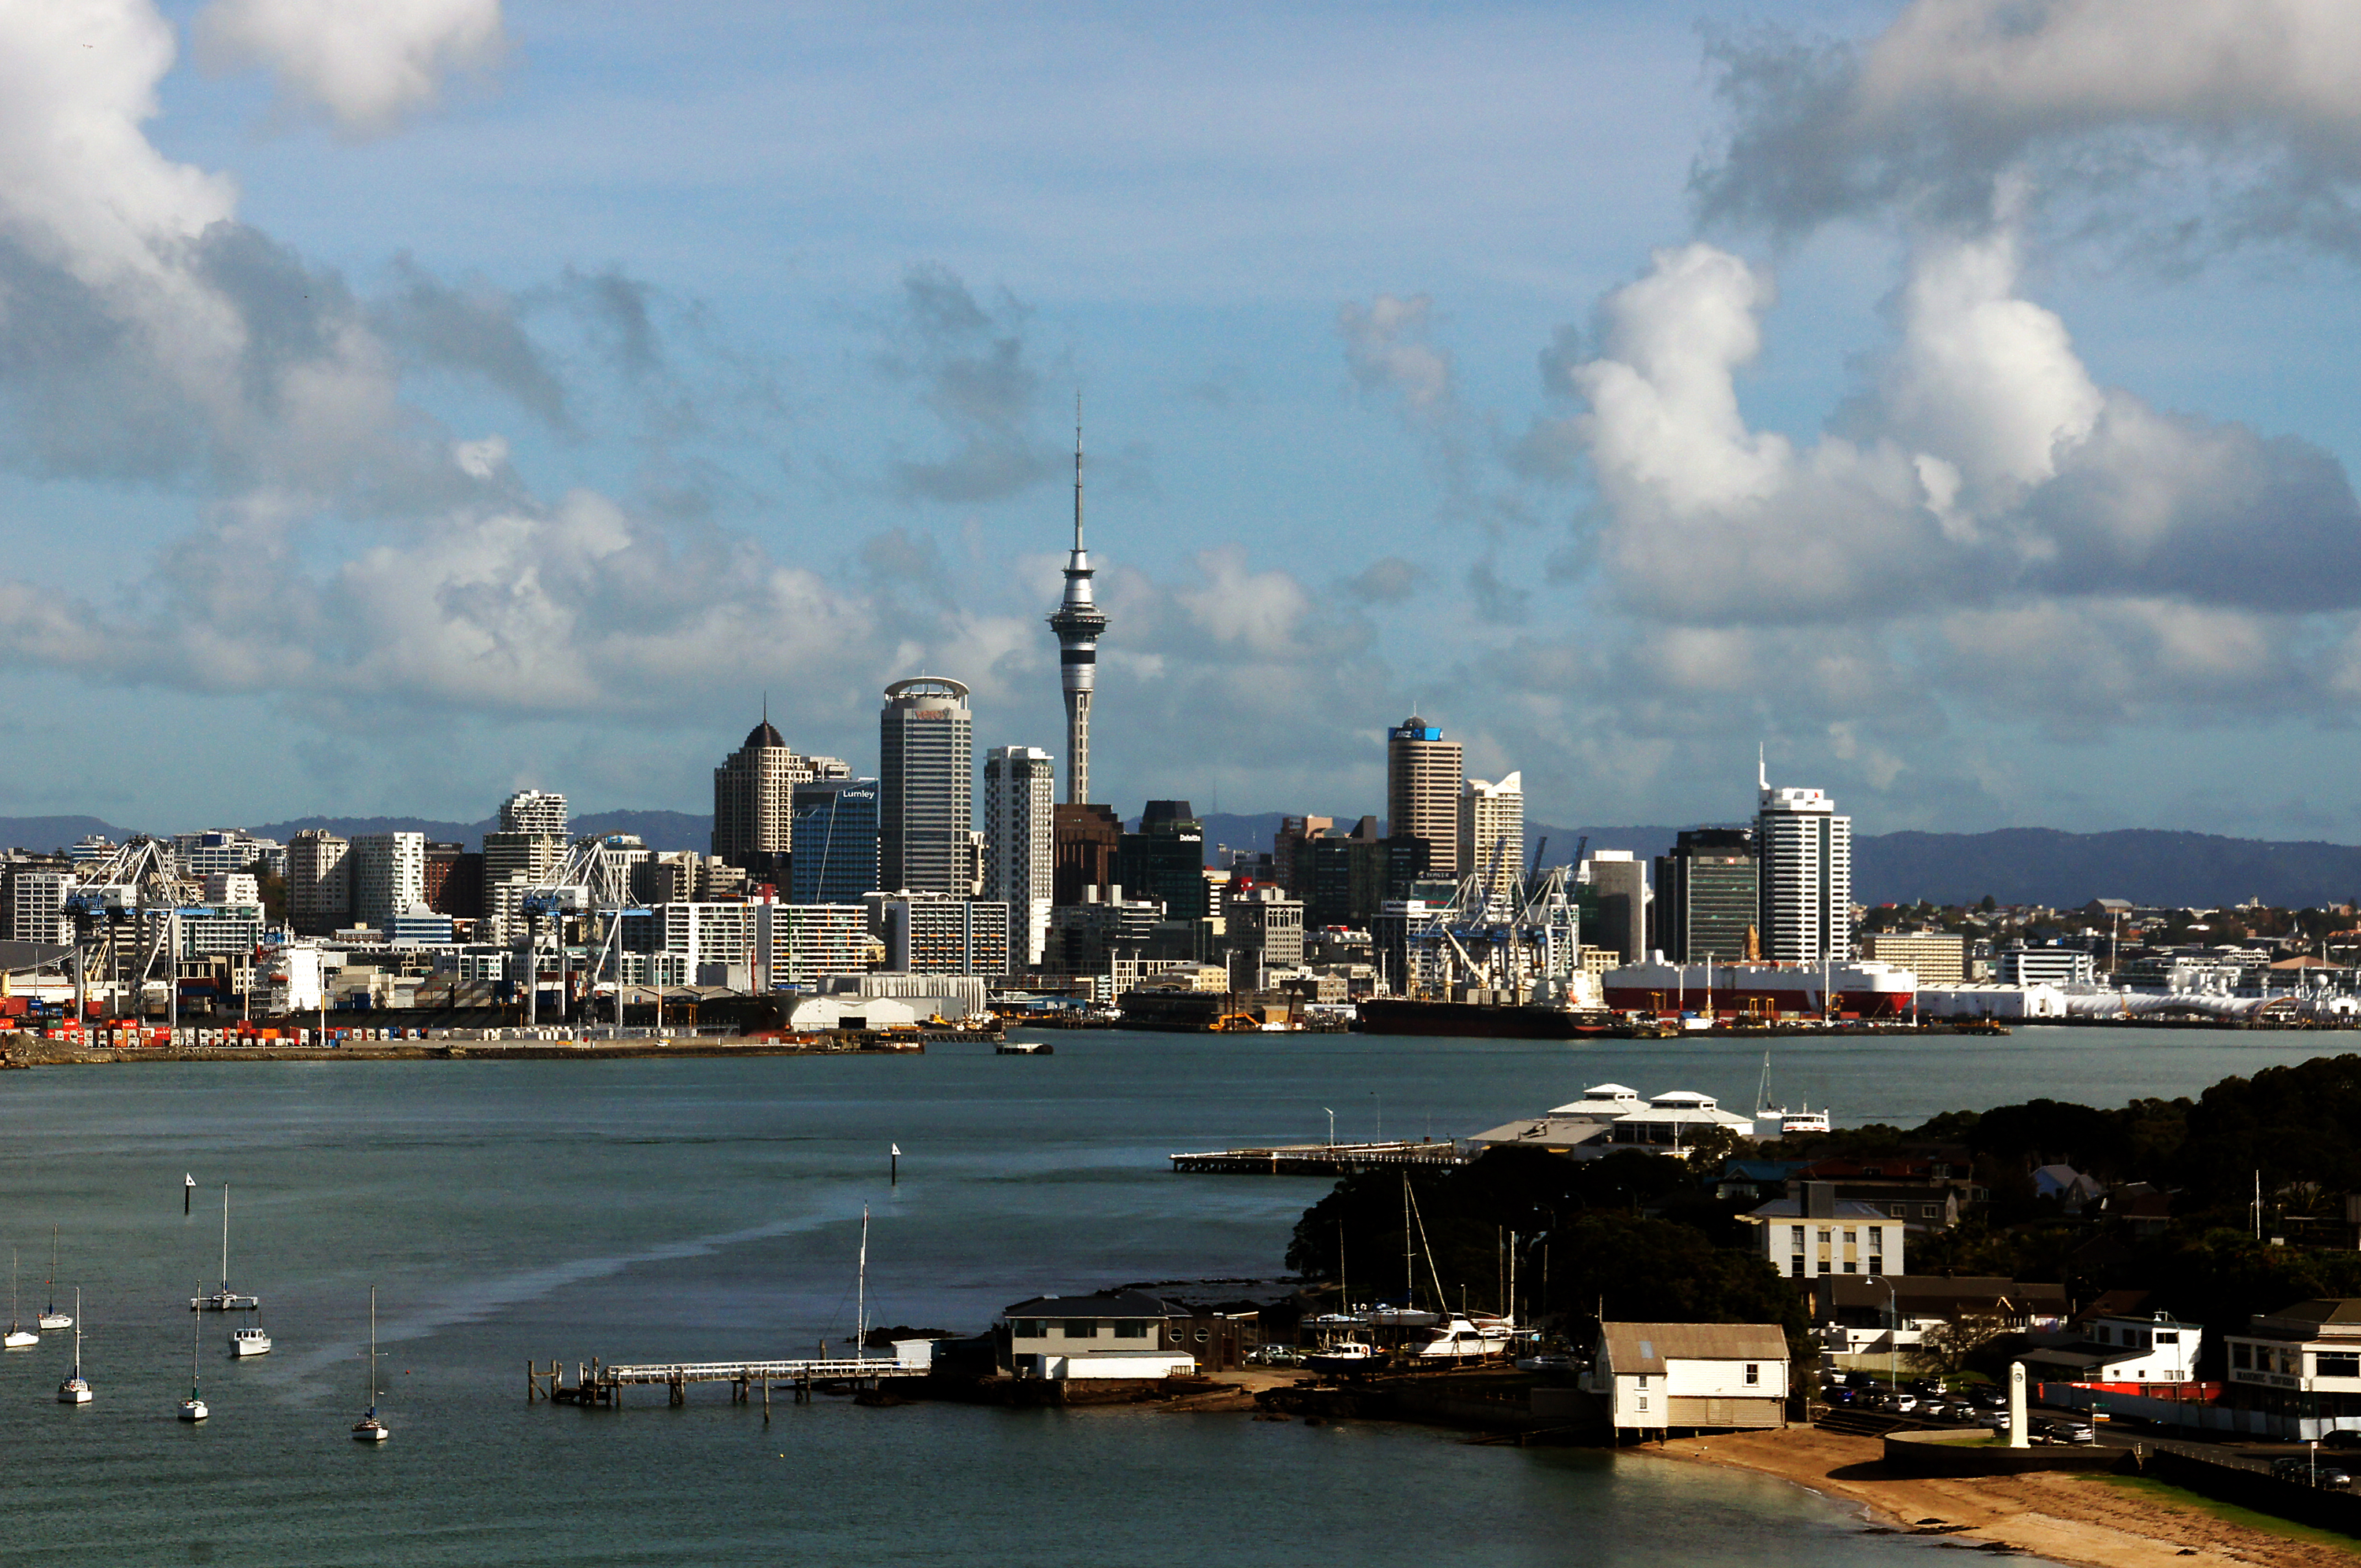 Devonport view of auckland city. photo